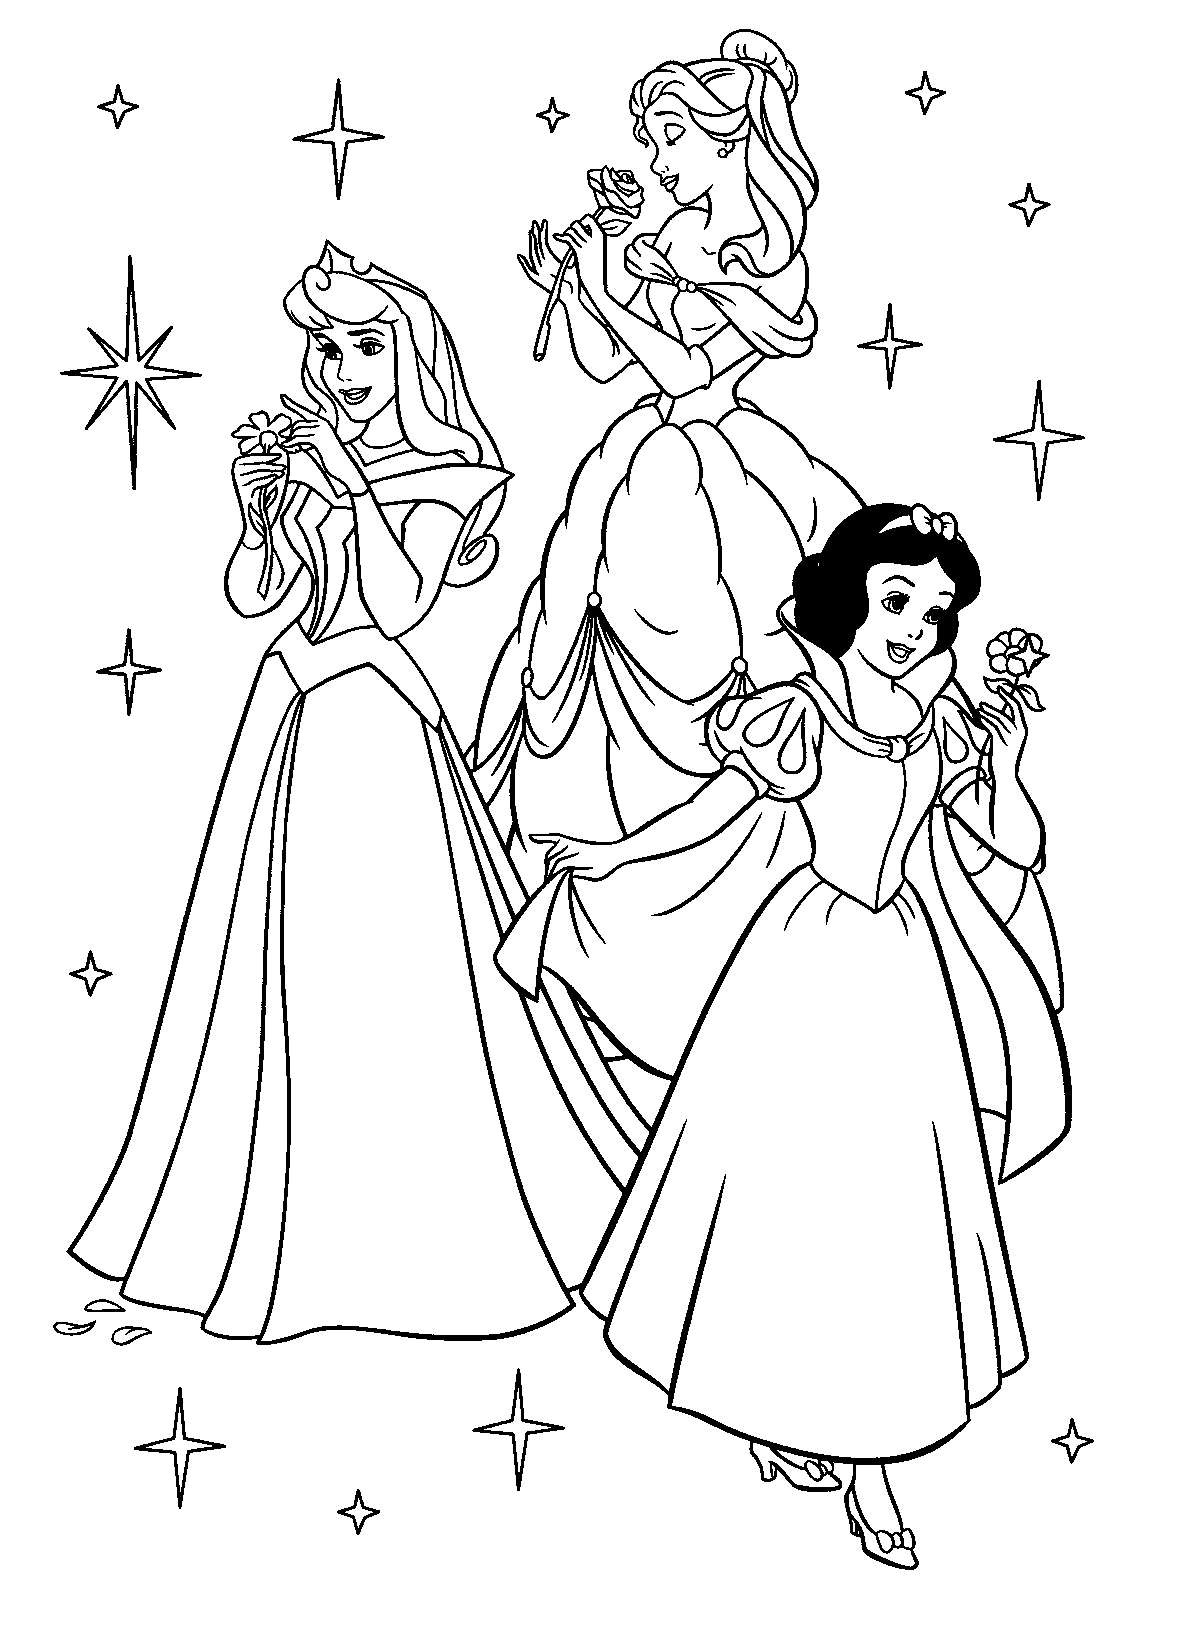 princess coloring sheets free printable - People.davidjoel.co